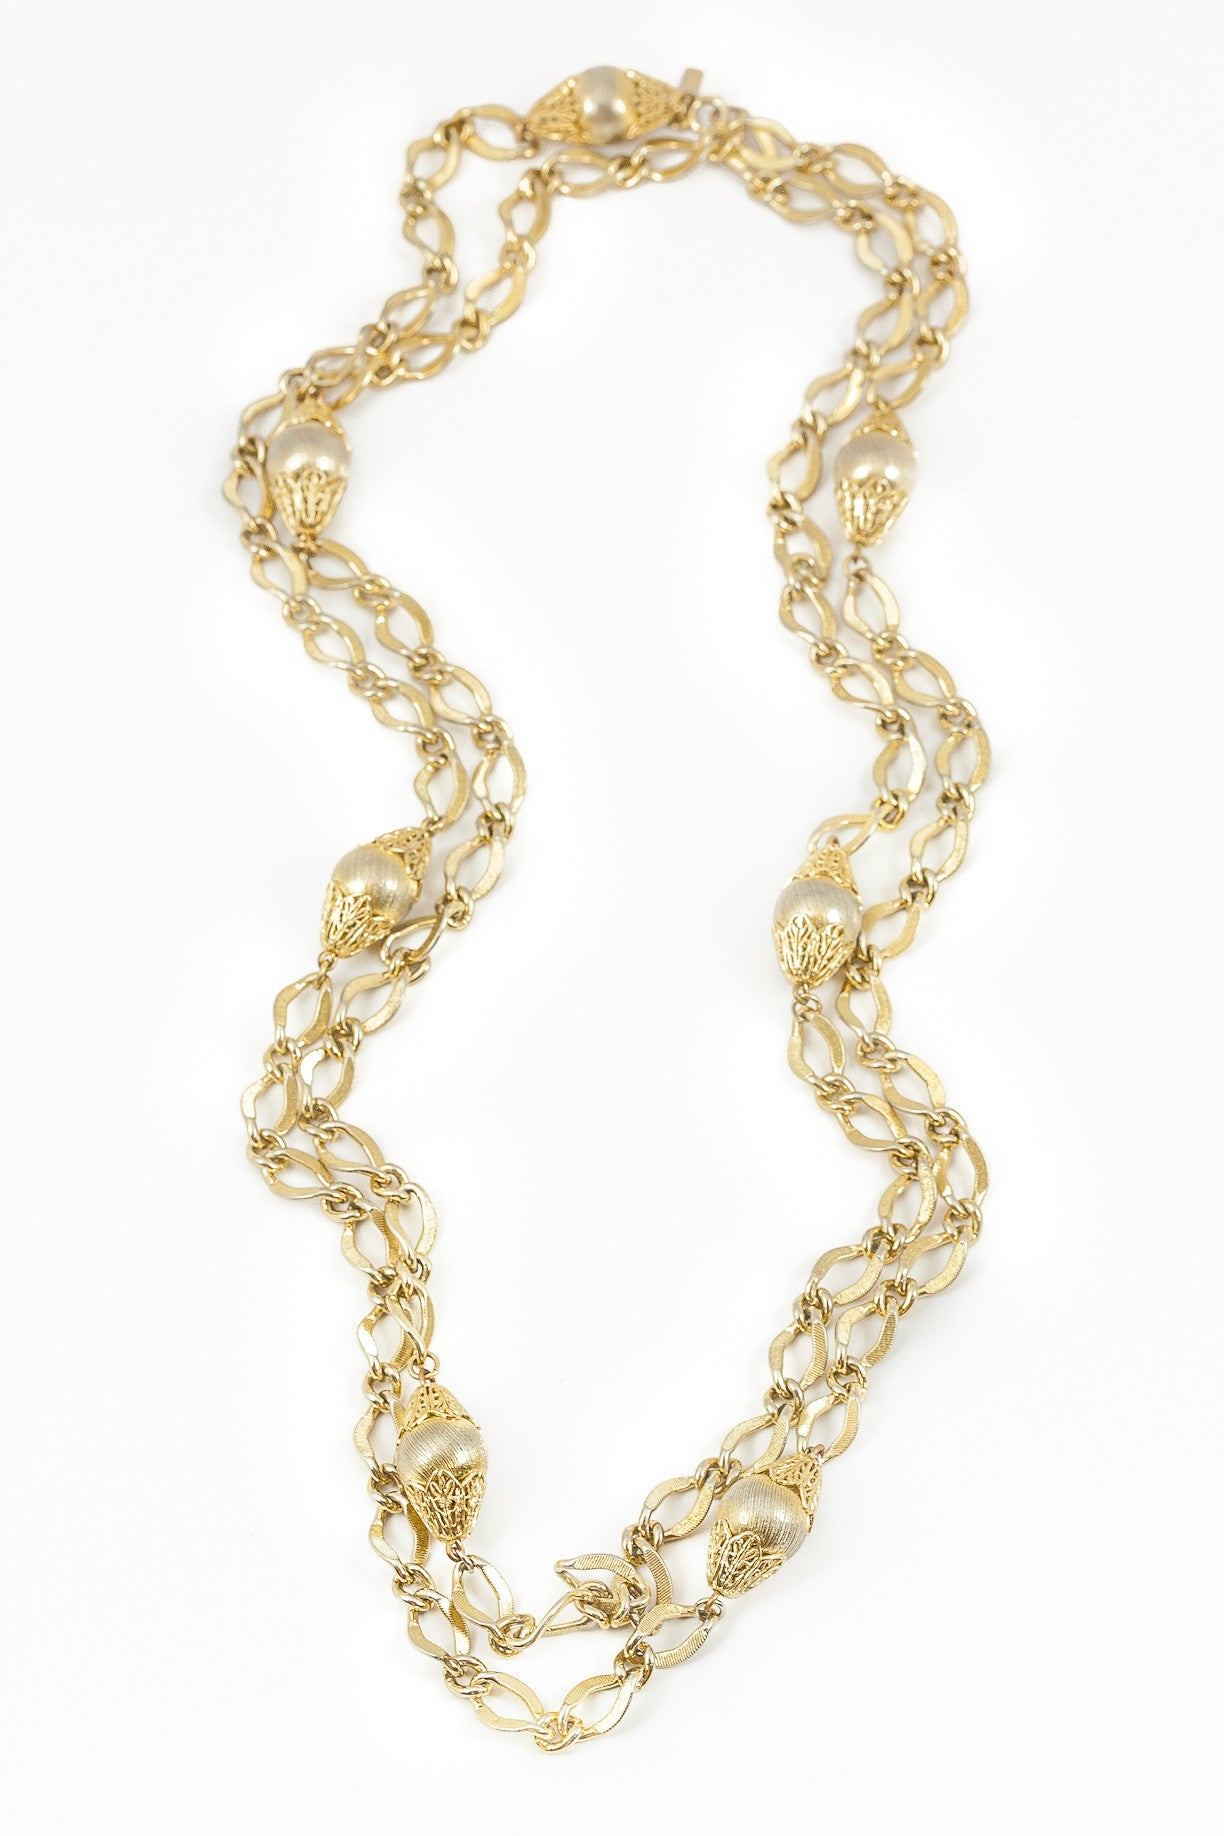 60's__Monet__Extra Long Chunky Chain Necklace